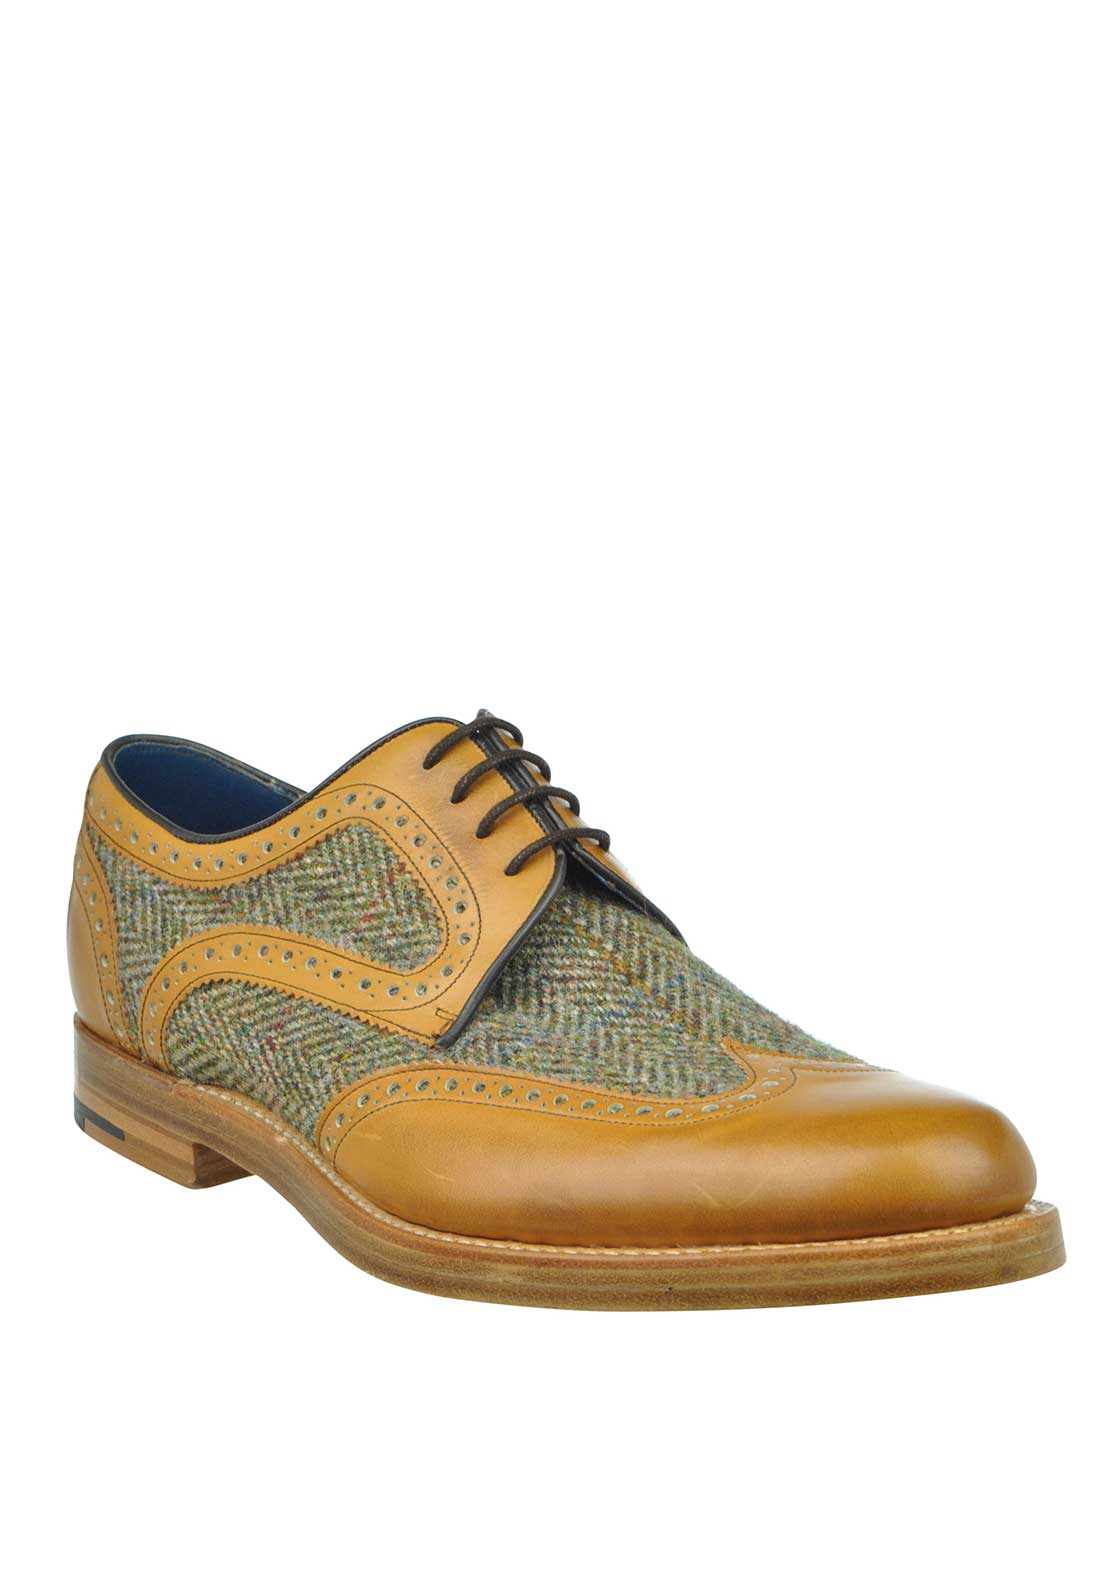 Barker Mens Dowd Derby Wingtip Shoe, Tan